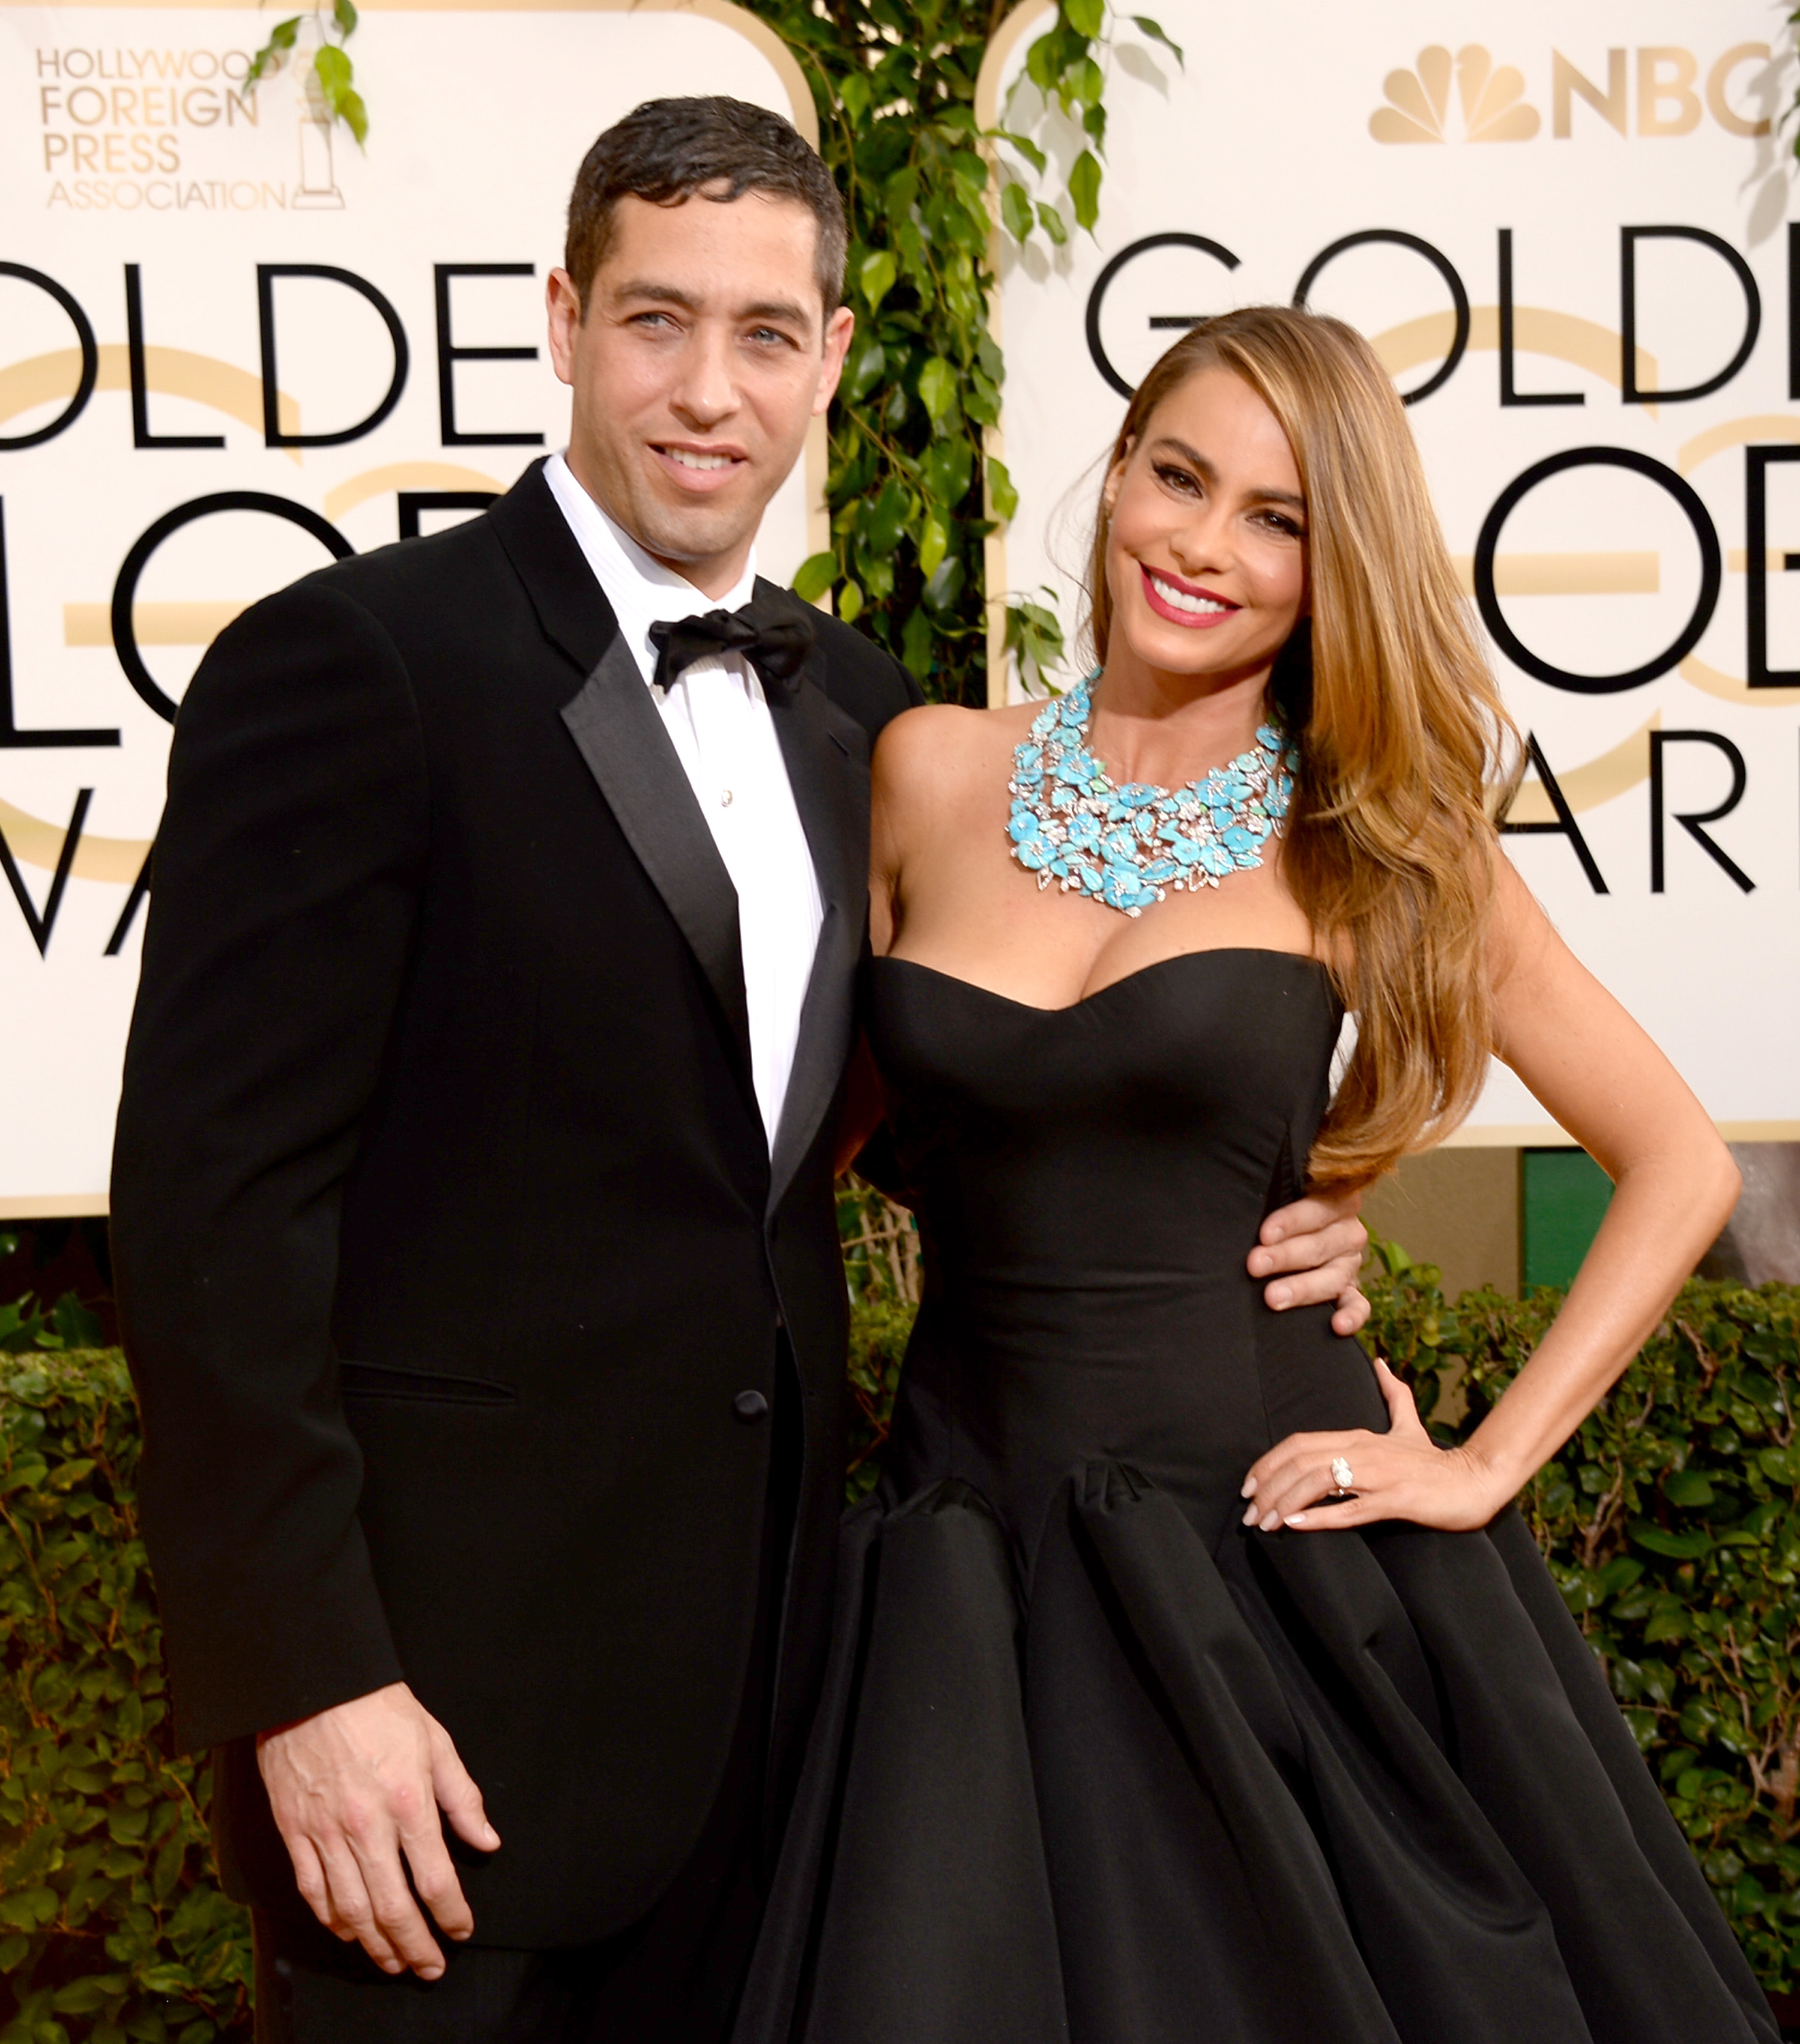 Nick Loeb (L) and actress Sofia Vergara attend the 71st Annual Golden Globe Awards held at The Beverly Hilton Hotel on Jan. 12, 2014 in Beverly Hills, Calif.